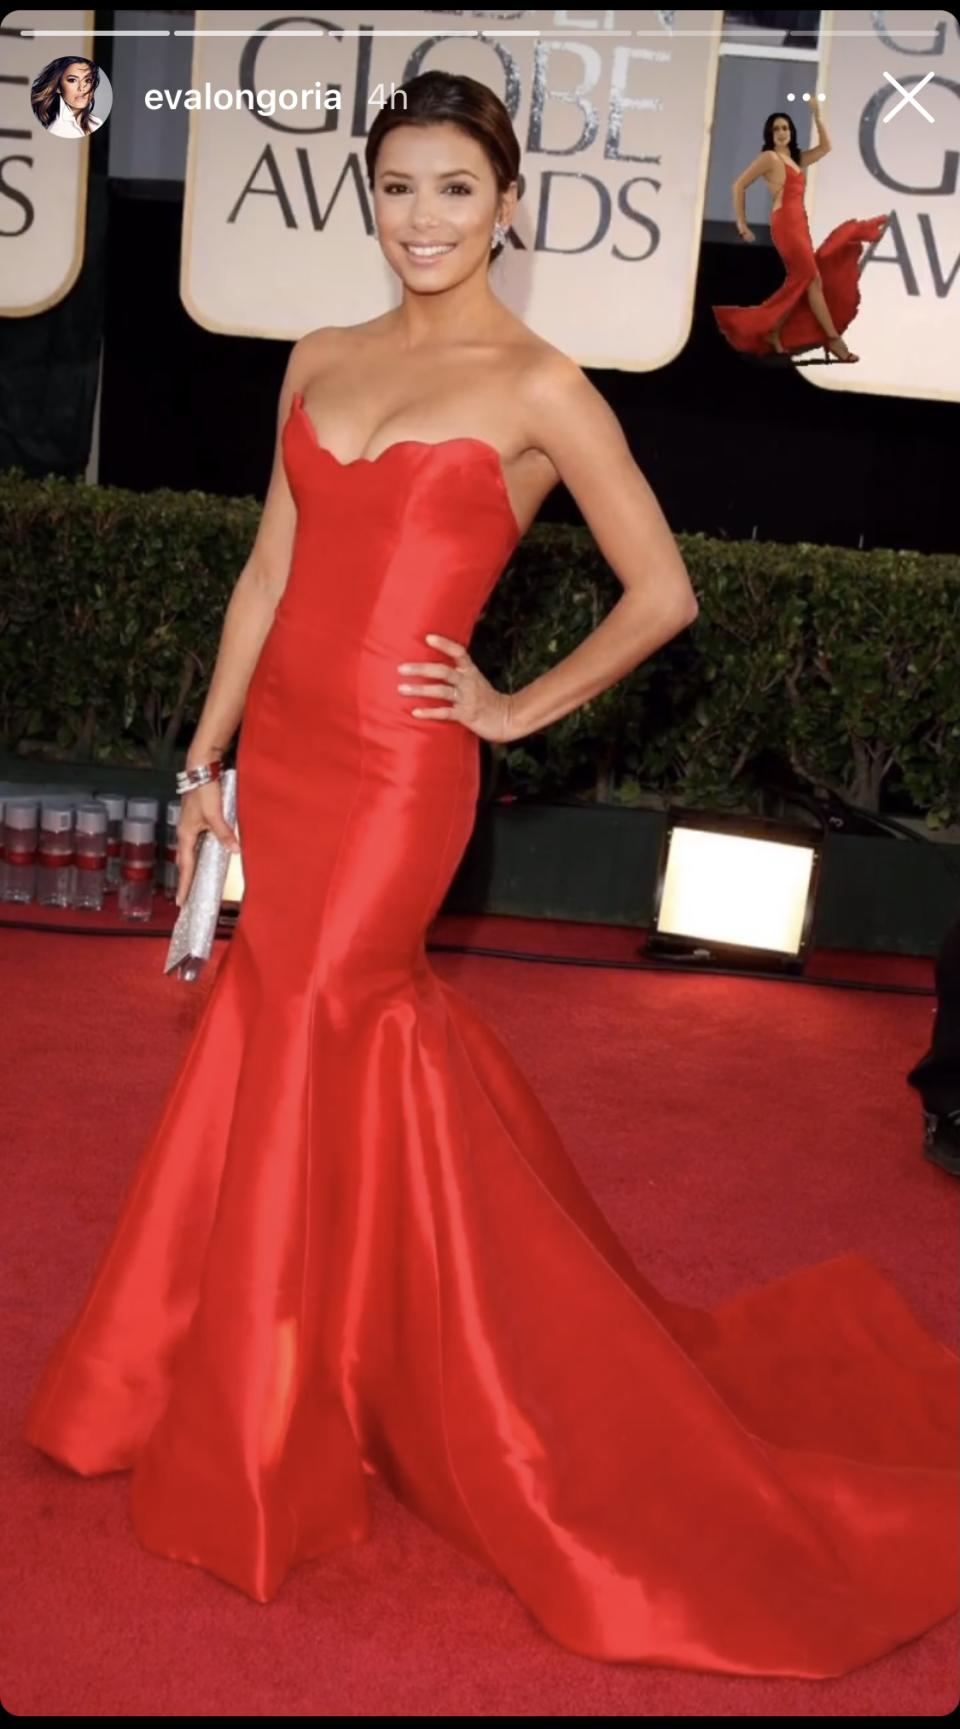 <p>For her fourth pick, Longoria threw things back to her 2009 Golden Globes red carpet appearance. Her strapless Reem Acra gown hugged every curve, and with its vibrant red hue, Longoria looked like the perfect embodiment of everyone's favourite dancing emoji. Image via Instagram/EvaLongoria.</p>